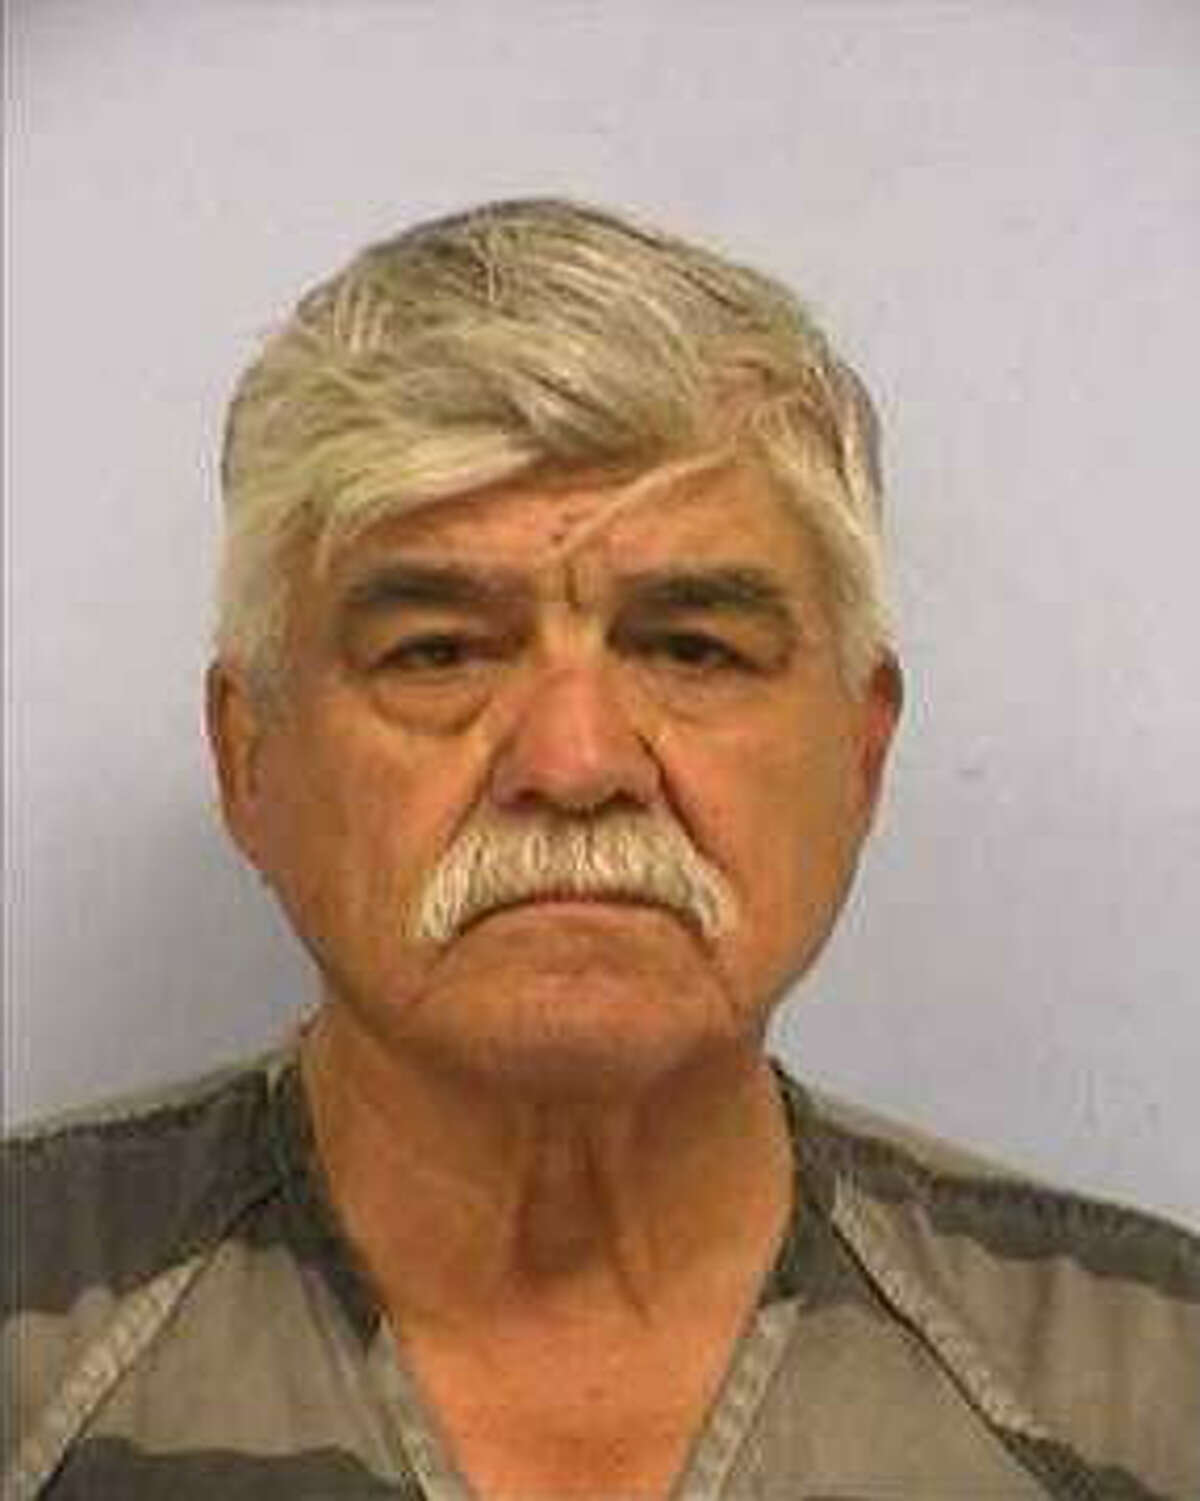 The DEA arrested 18 people in Austin, Texas on March 28, 2018 after they were accused of smuggling cocaine, meth and heroin across multiple states.Juan Vasquez, 69, was arrested as part of the sting.